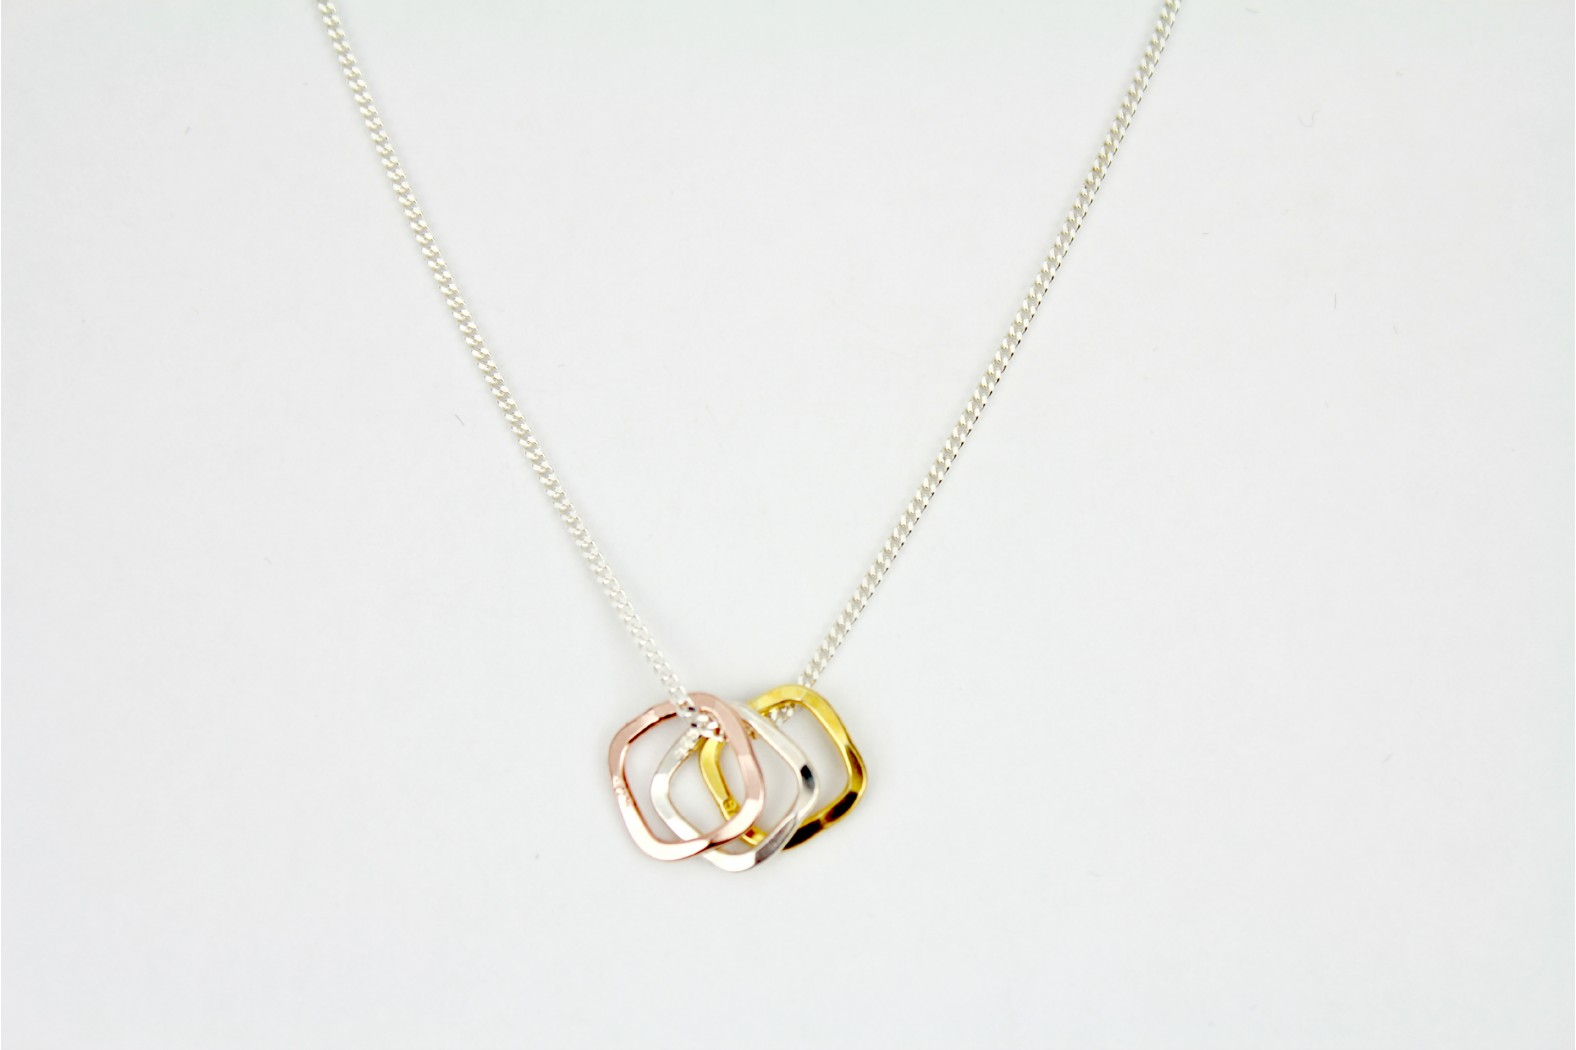 Tricolour Rose/Yellow gold plus silver contemporary style on 18ins. 45cm rope chain